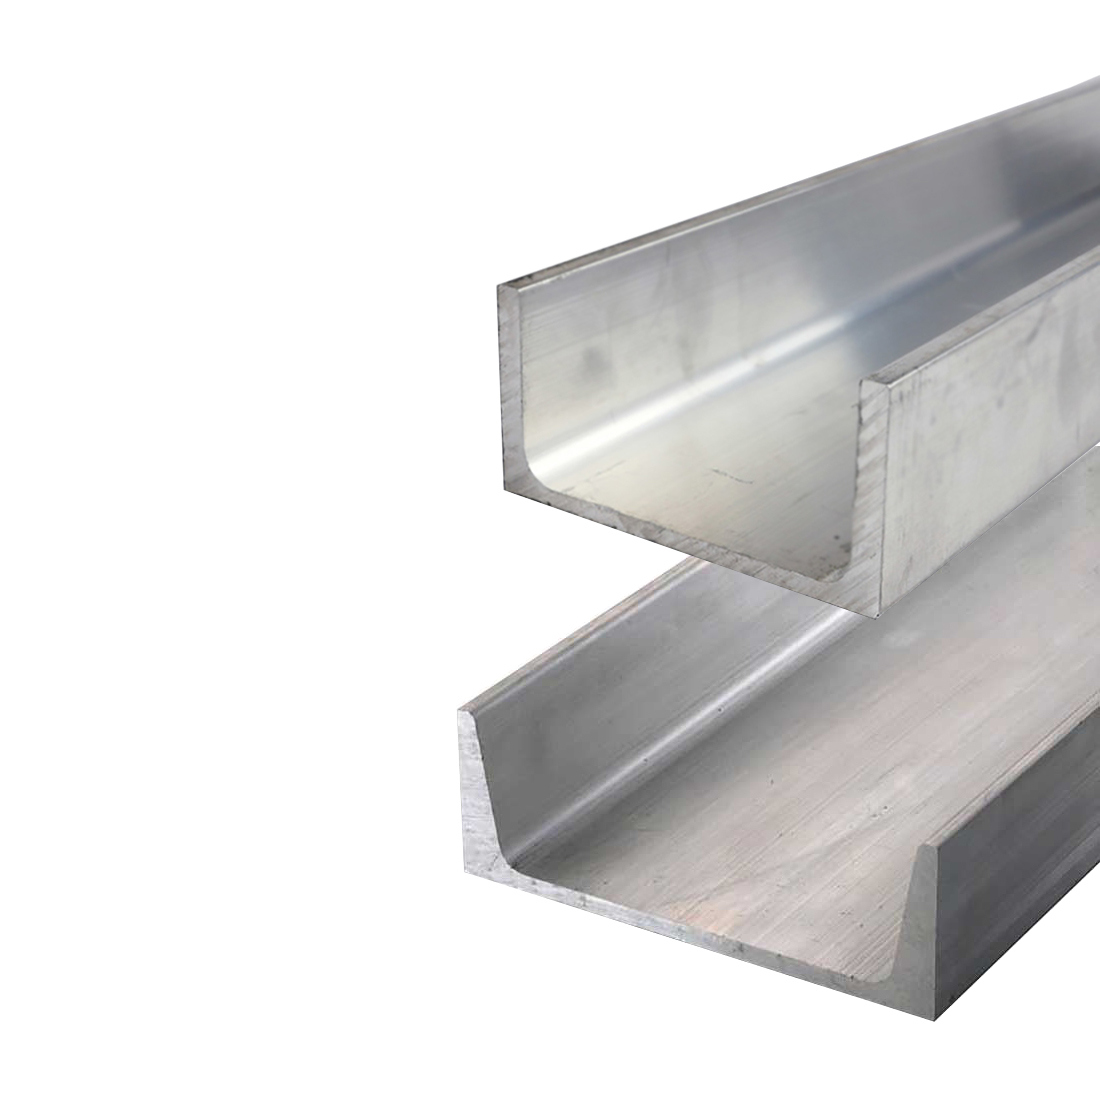 Aluminum Structural Channel at Online Metal Supply